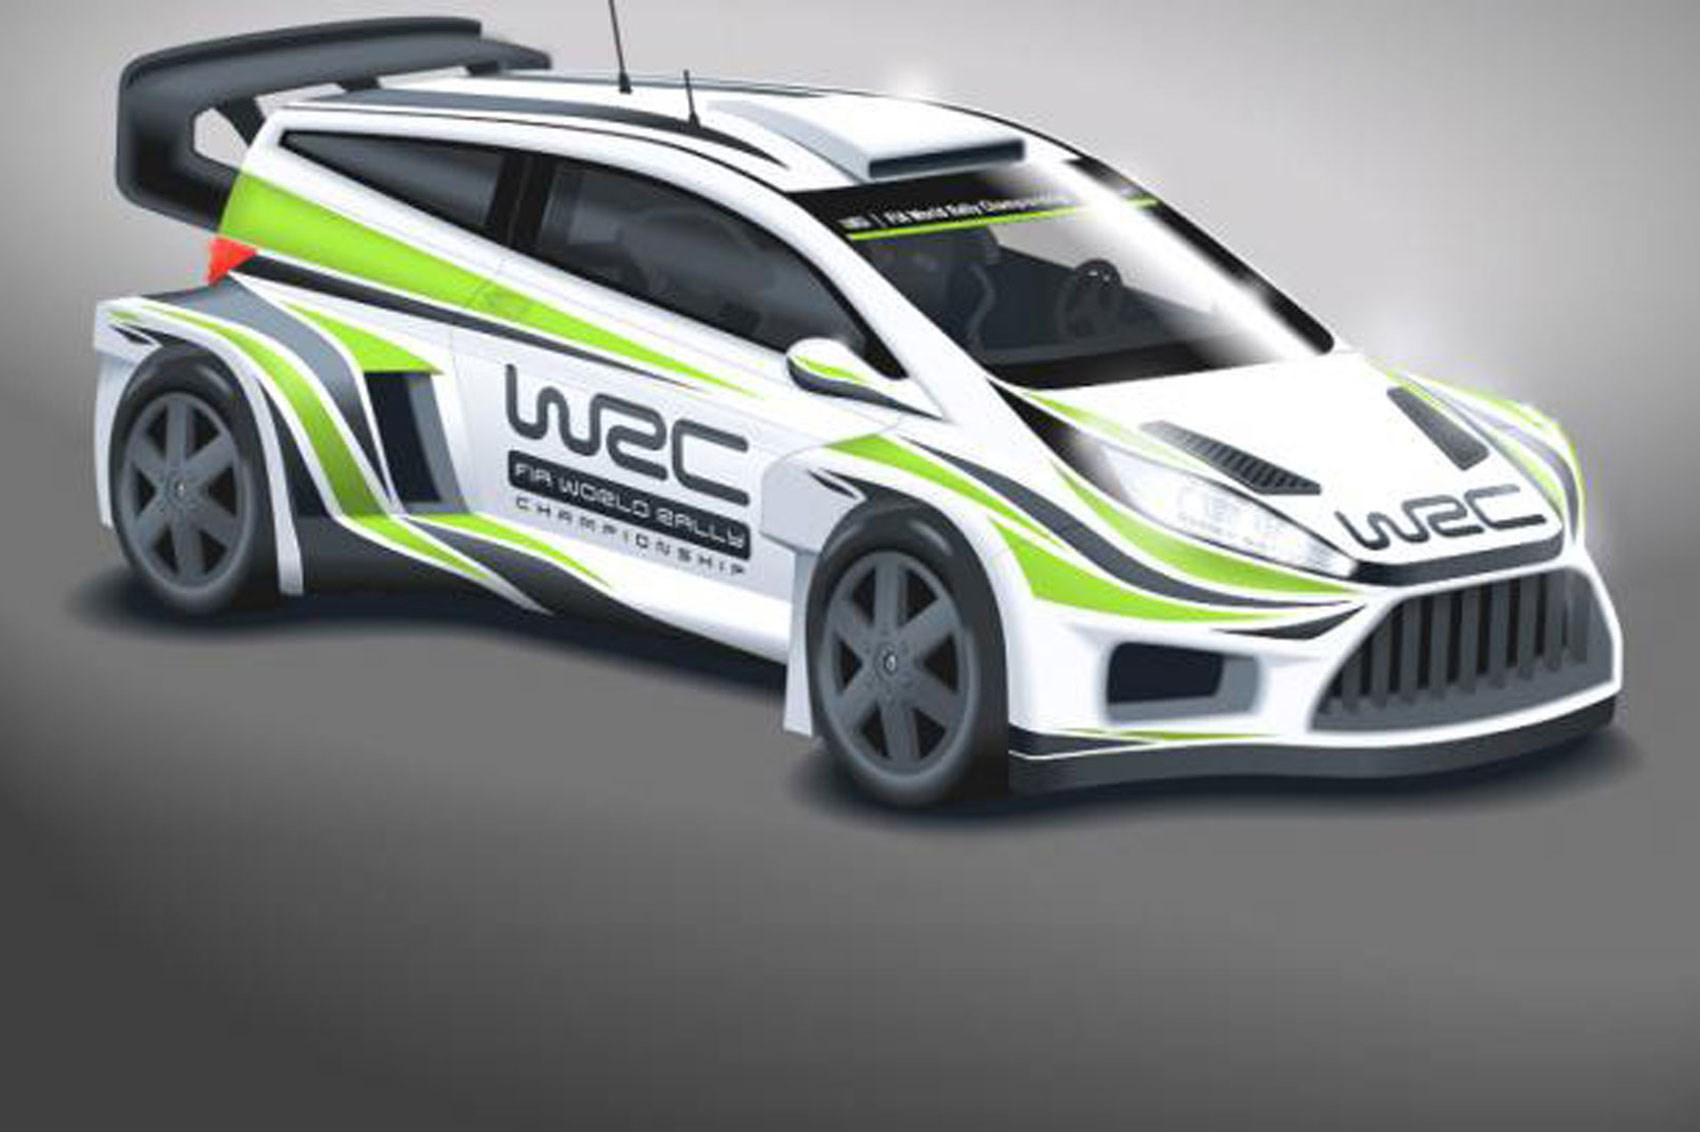 Ultrablogus  Prepossessing Wild New Look For Wrc Cars In  By Car Magazine With Goodlooking Wrc Cars Will Get Wider Bodies Bigger Wings And More Power For  With Delectable  Pontiac G Interior Also Rx Interior In Addition  Chevy Silverado Interior Parts And Honda Accord Custom Interior As Well As Kia Optima Hybrid Interior Additionally Xb Interior From Carmagazinecouk With Ultrablogus  Goodlooking Wild New Look For Wrc Cars In  By Car Magazine With Delectable Wrc Cars Will Get Wider Bodies Bigger Wings And More Power For  And Prepossessing  Pontiac G Interior Also Rx Interior In Addition  Chevy Silverado Interior Parts From Carmagazinecouk